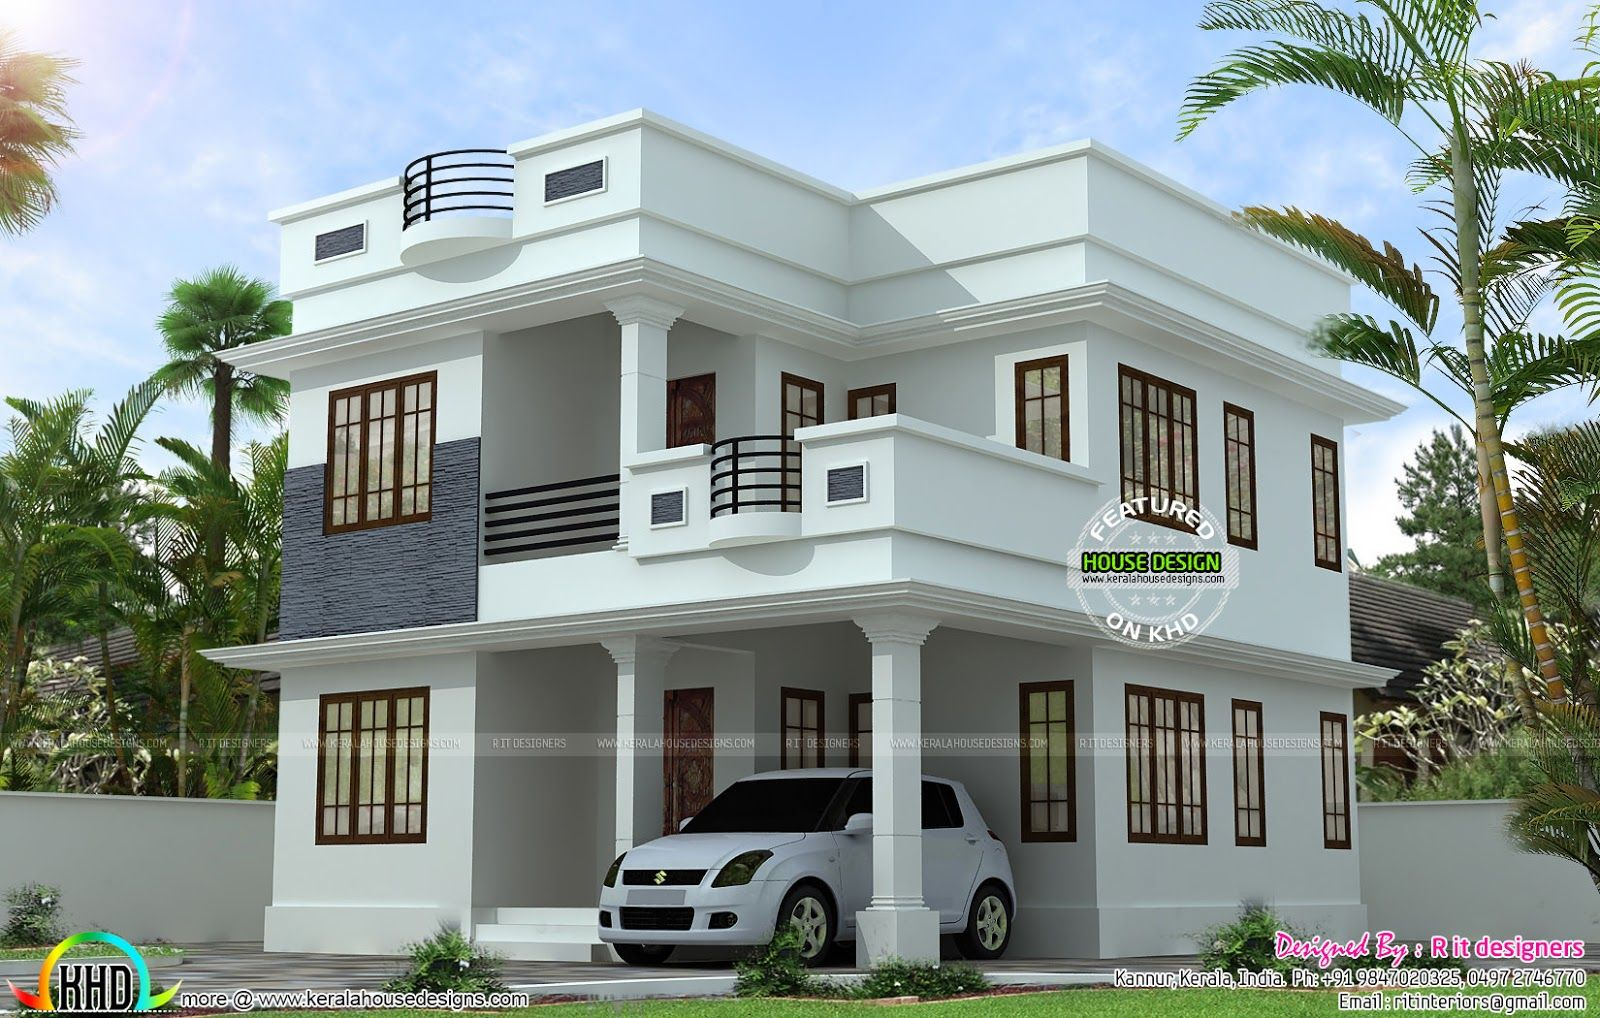 Neat and simple small house plan kerala home design and floor plans